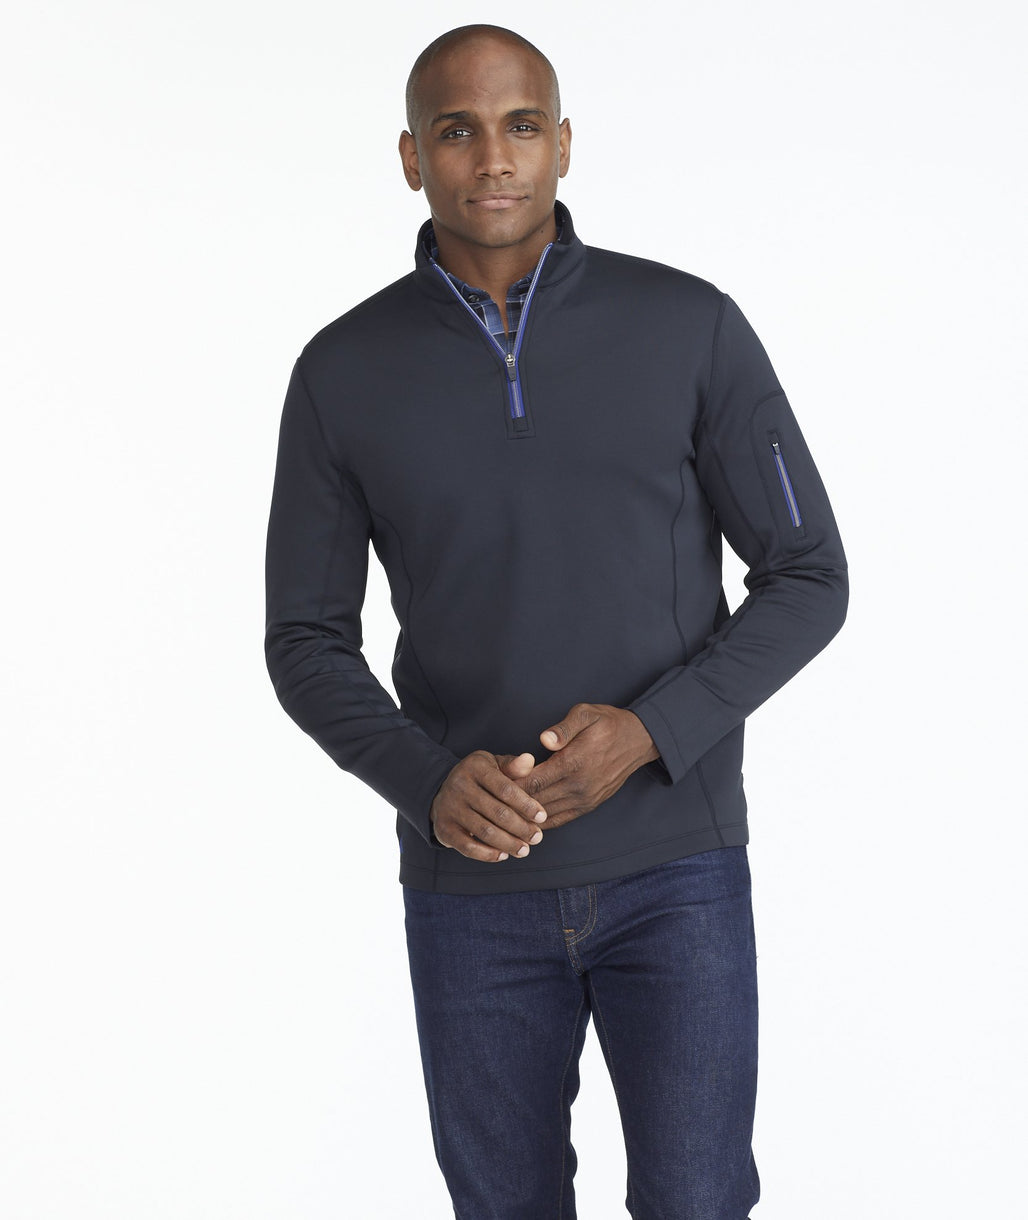 Model wearing a Black Performance Quarter-Zip